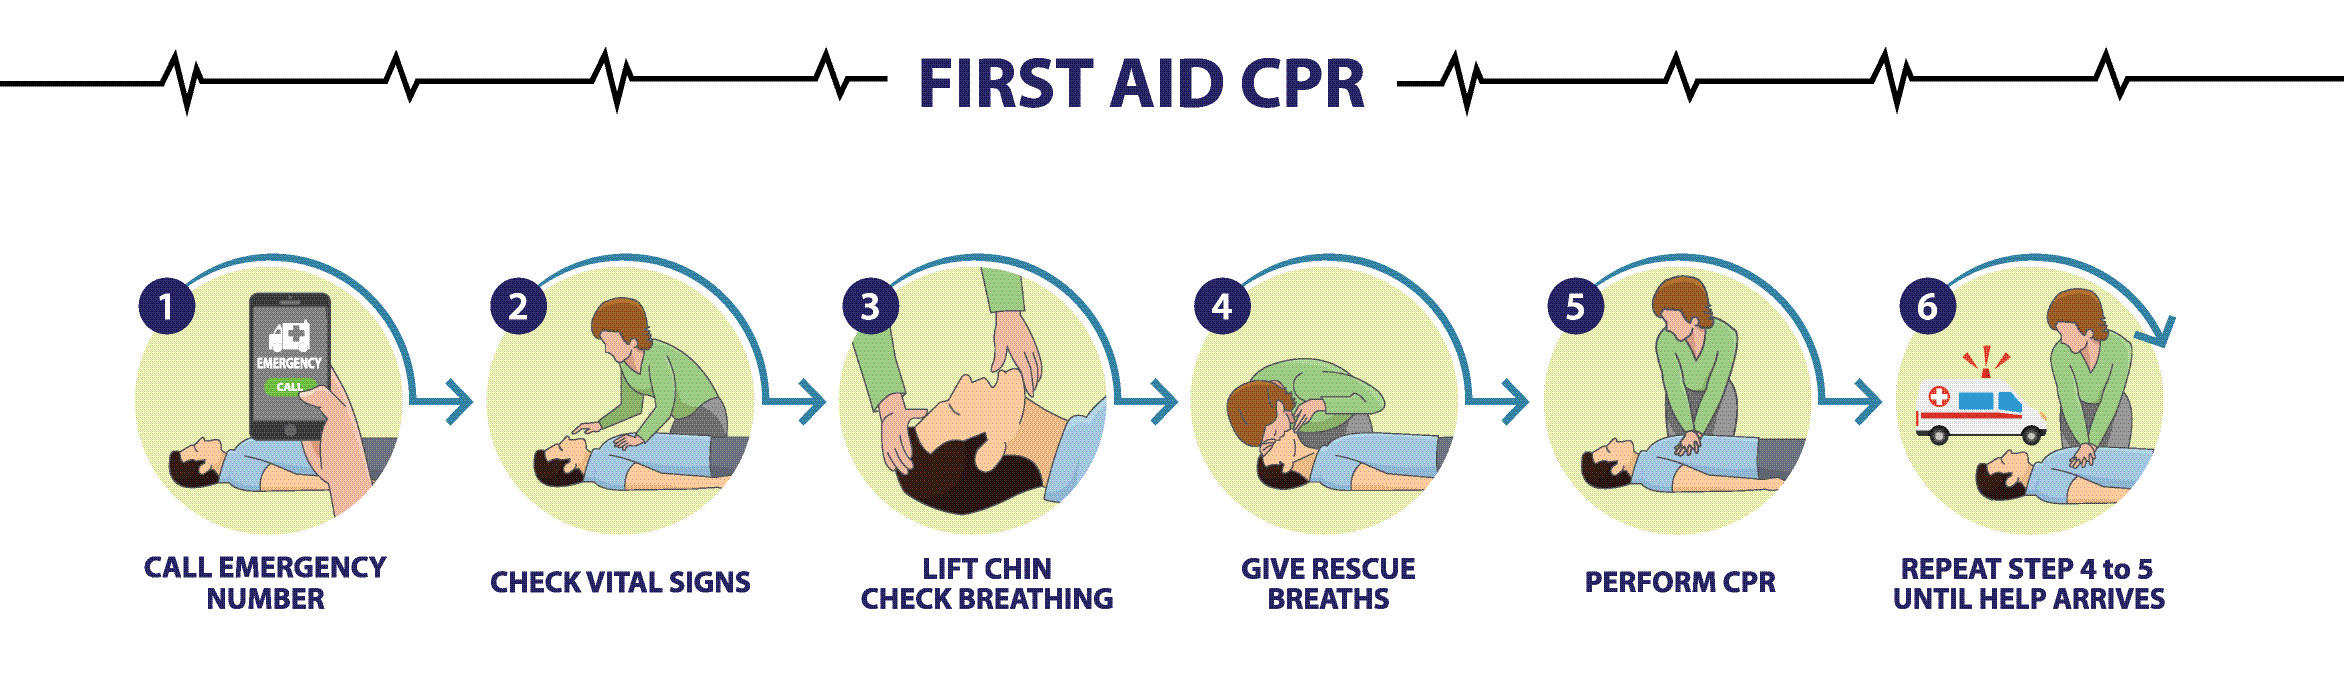 The steps of CPR